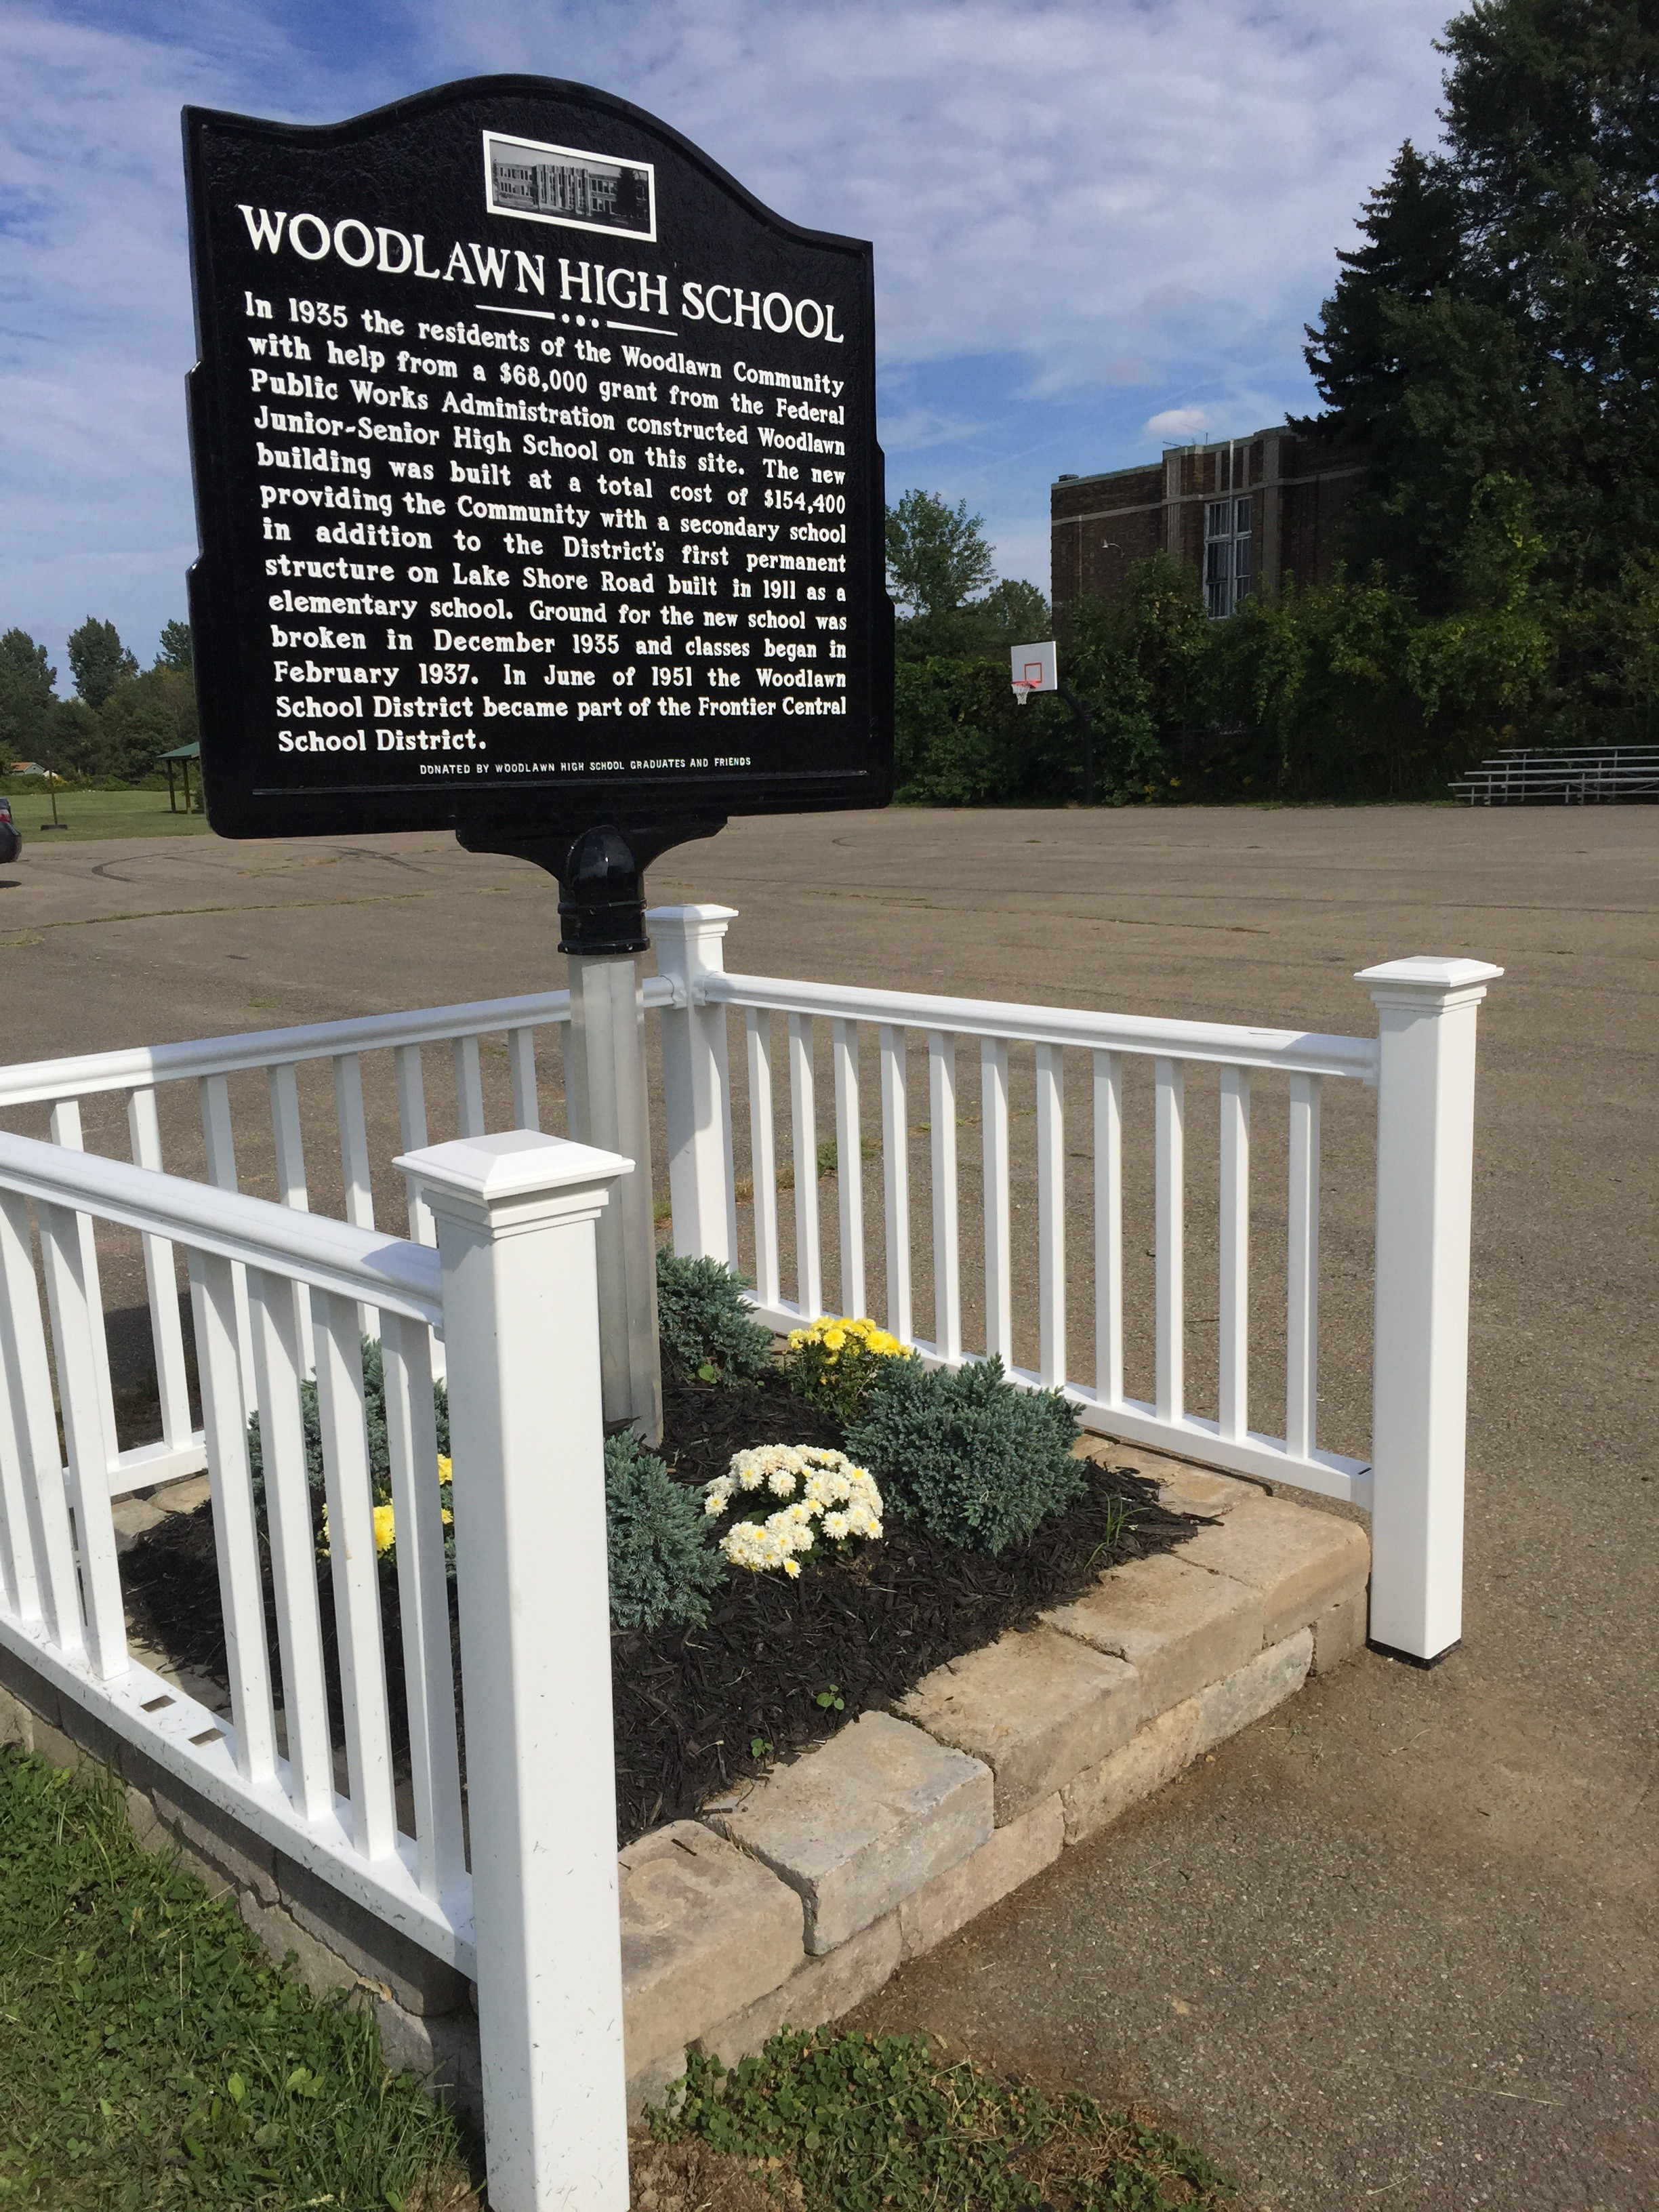 The former Woodlawn High School still stands in the background of the new historical marker.